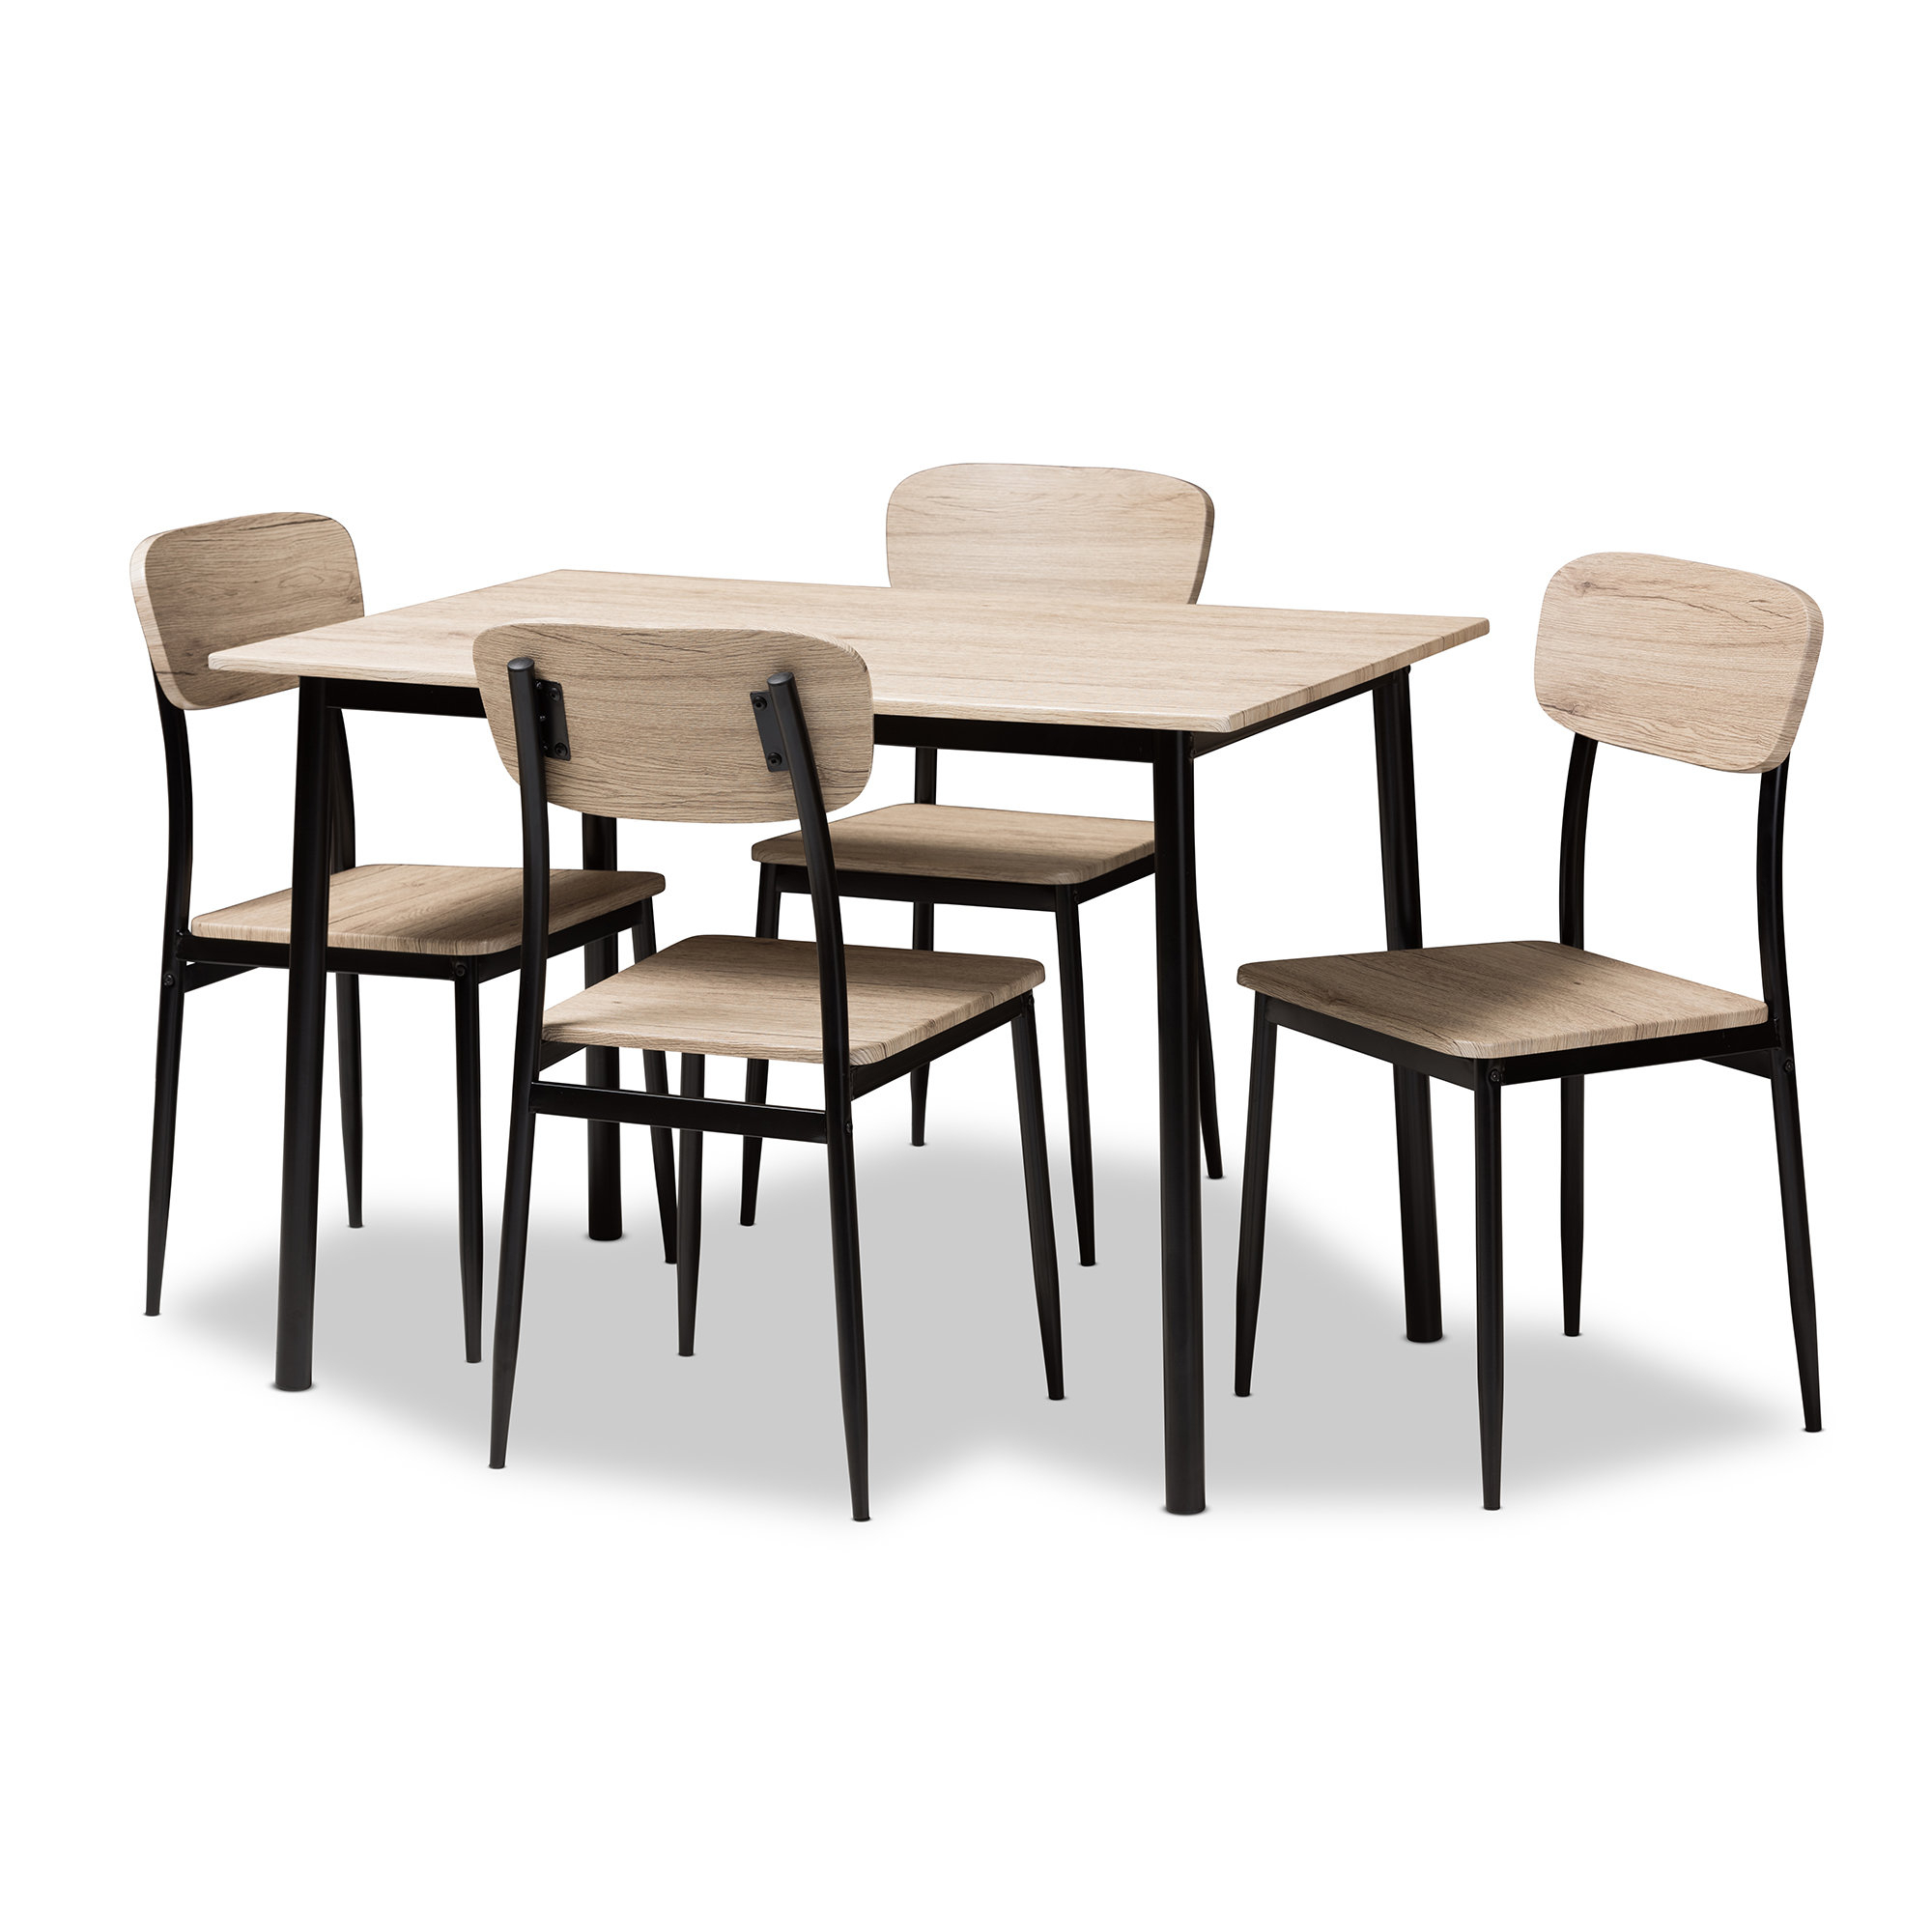 Millwood Pines Wiggs 5 Piece Dining Set & Reviews | Wayfair In 2018 Castellanos Modern 5 Piece Counter Height Dining Sets (Photo 4 of 20)